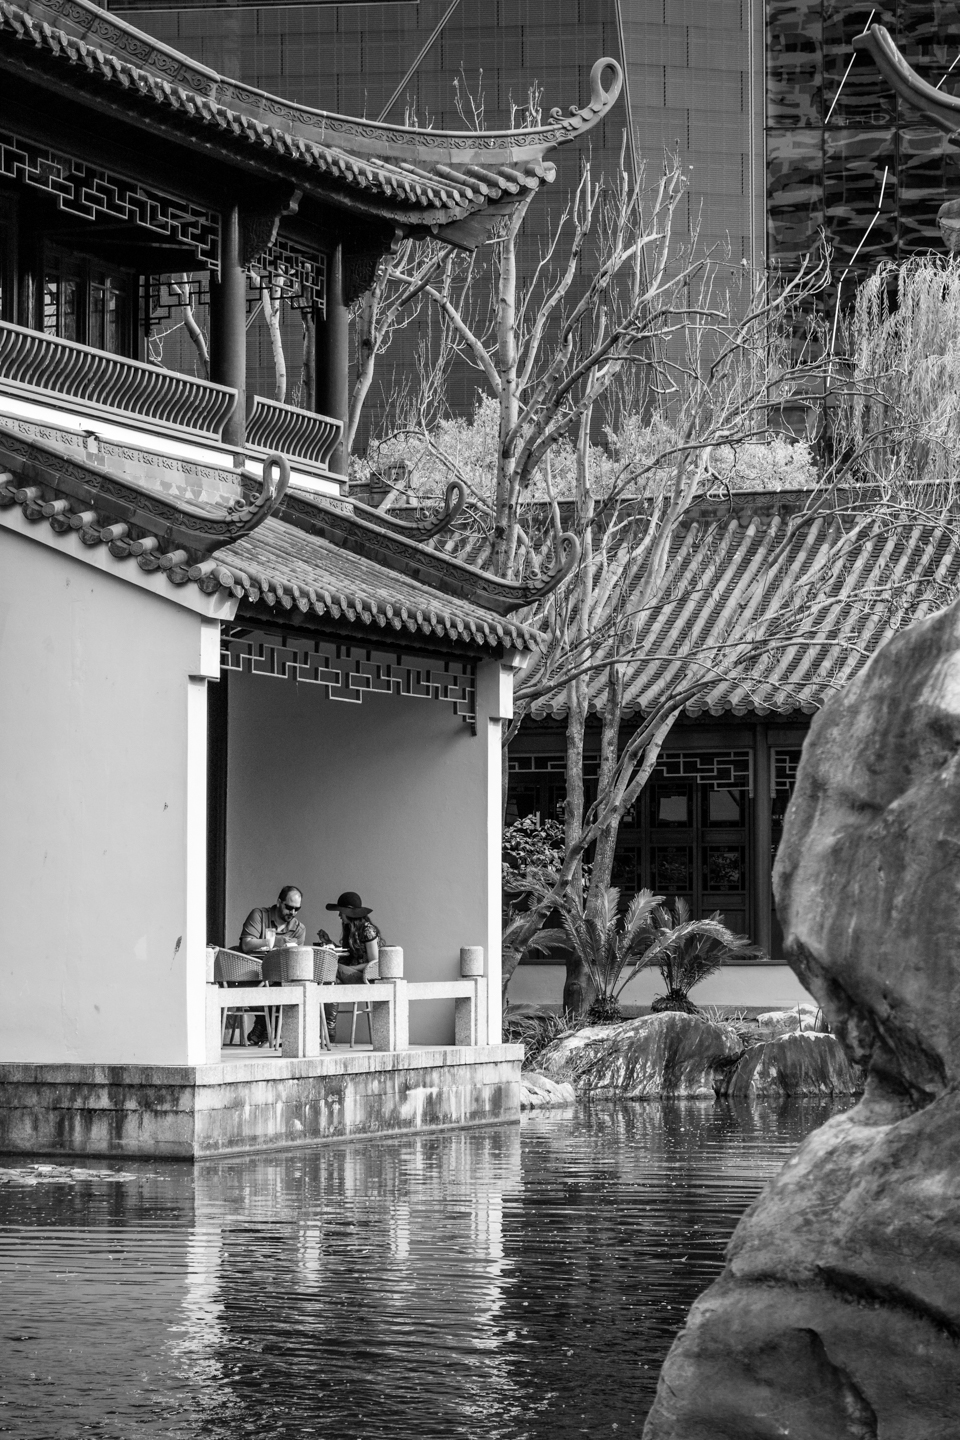 CRH_2018_CHINESE_GARDEN_OF_FRIENDSHIP_3109.jpg